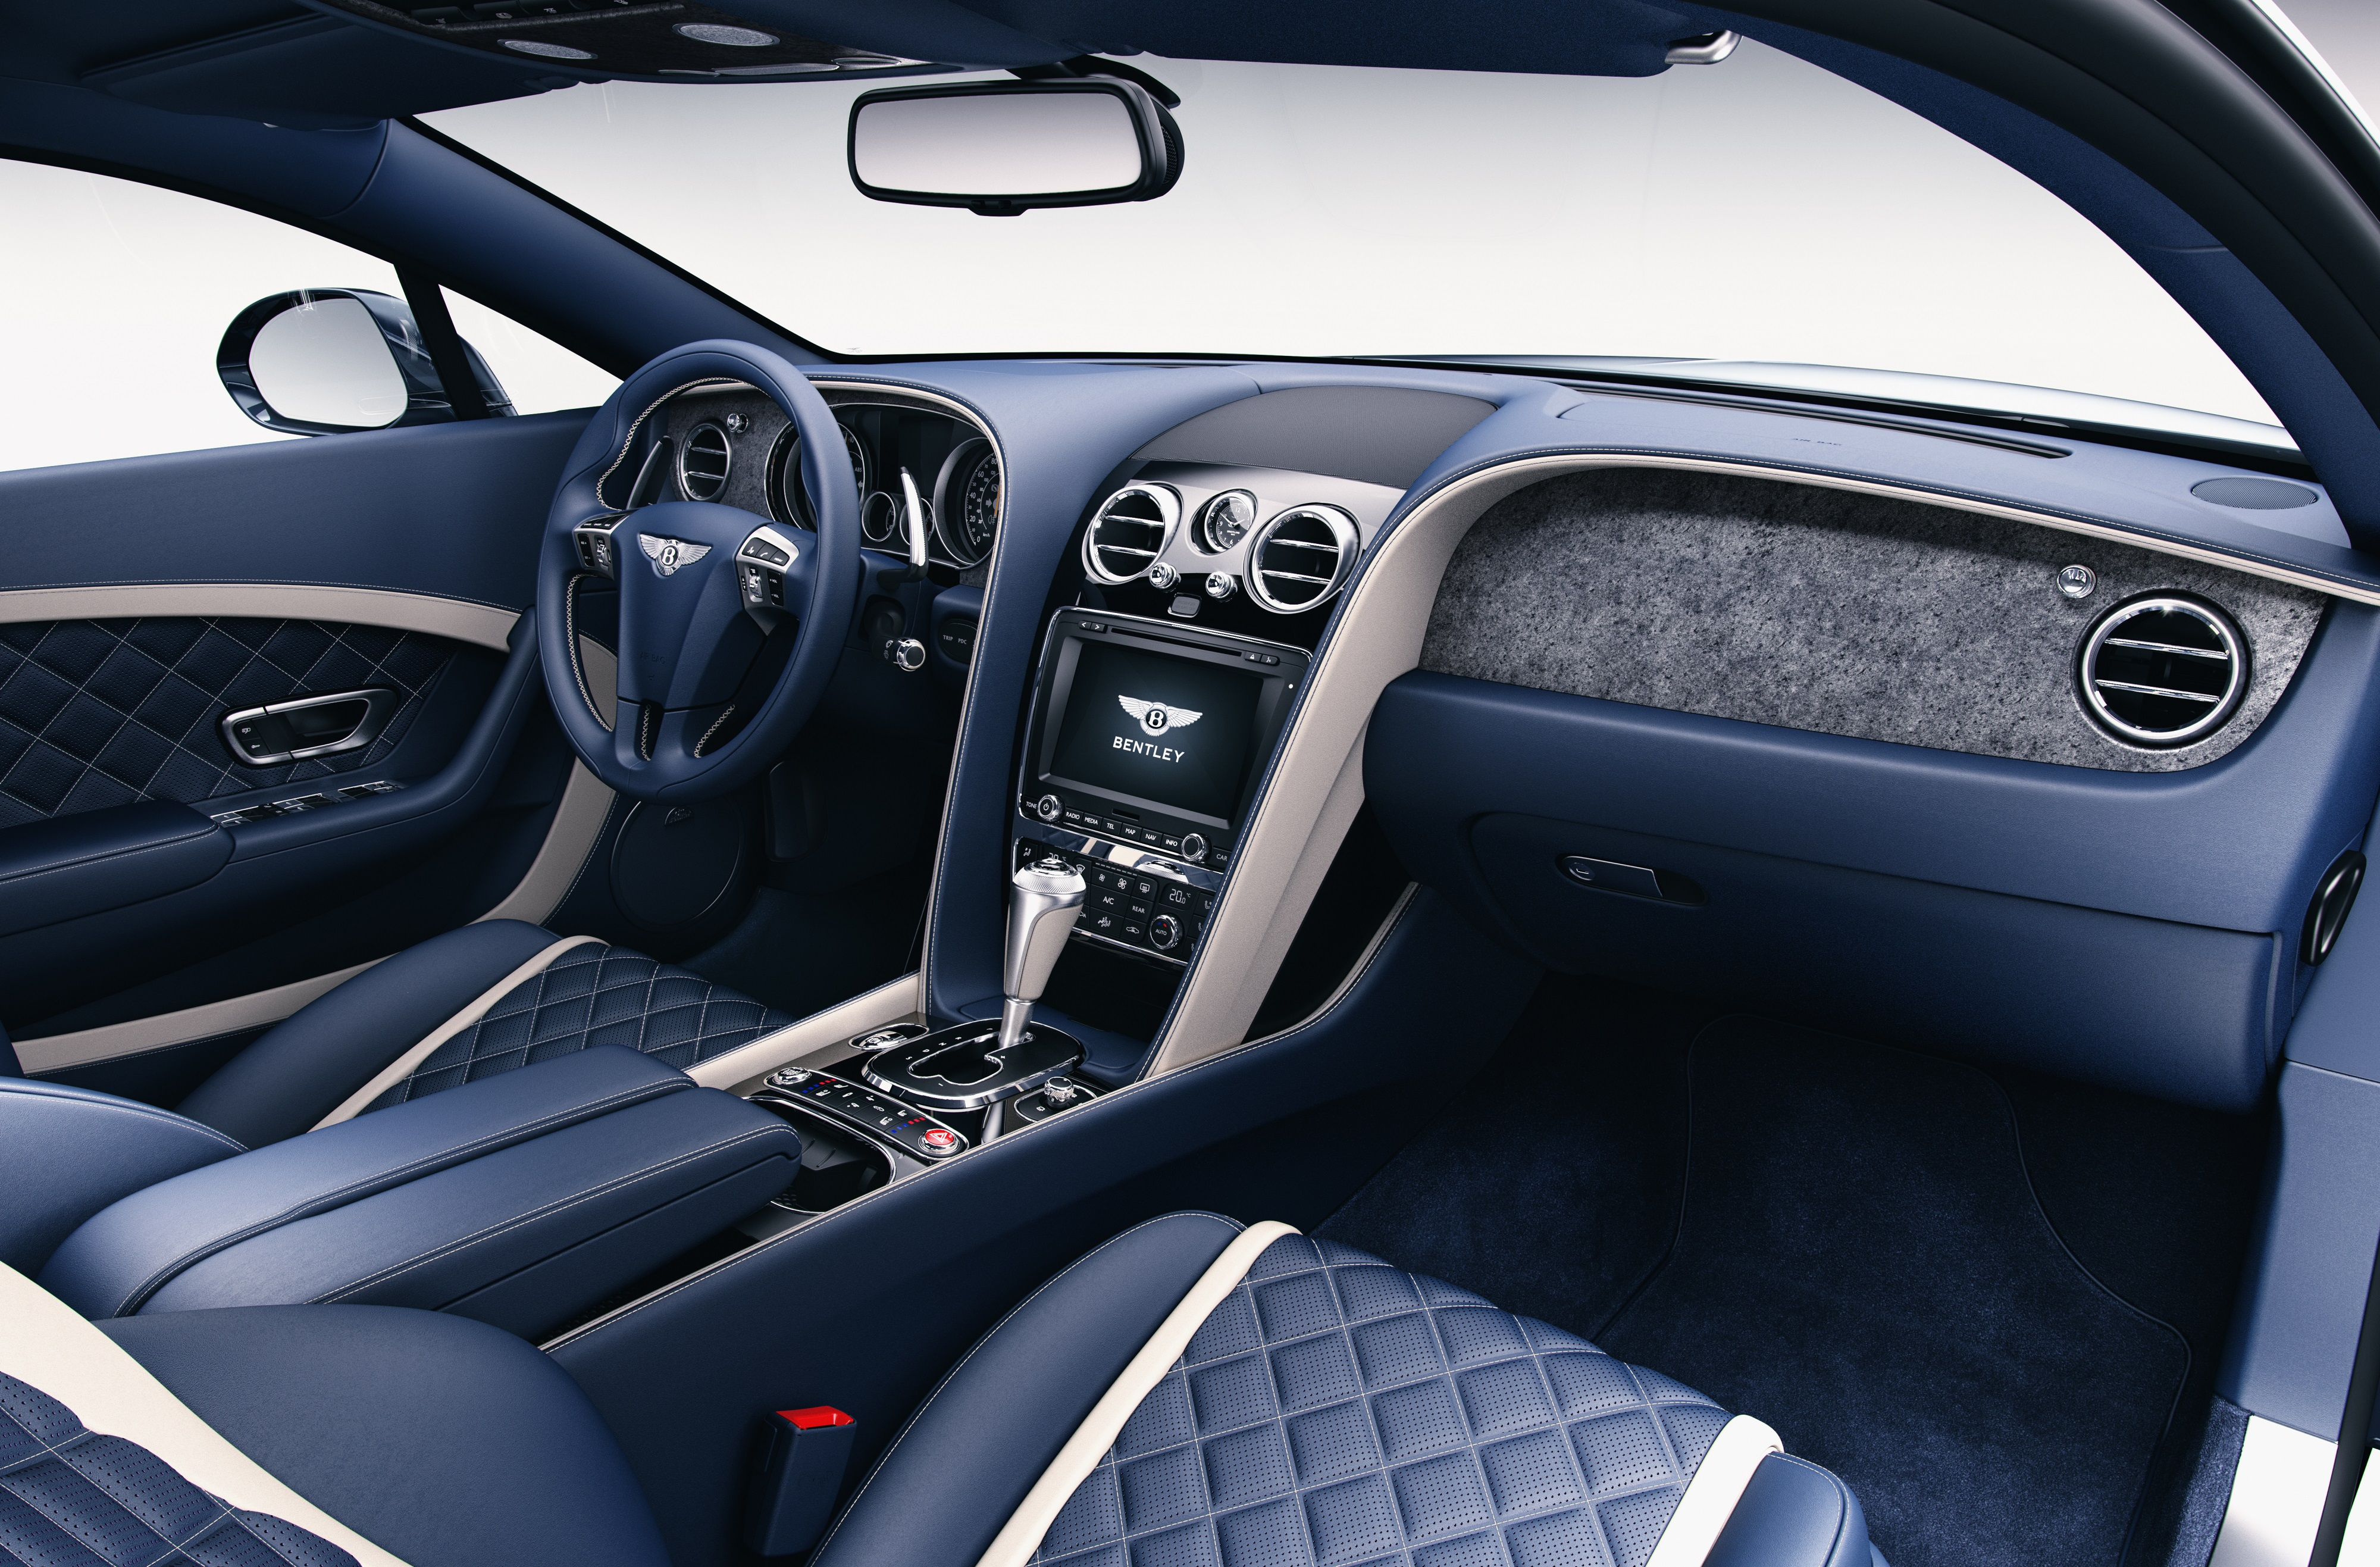 stone-veneers-by-mulliner---the-next-lev_r874.jpg